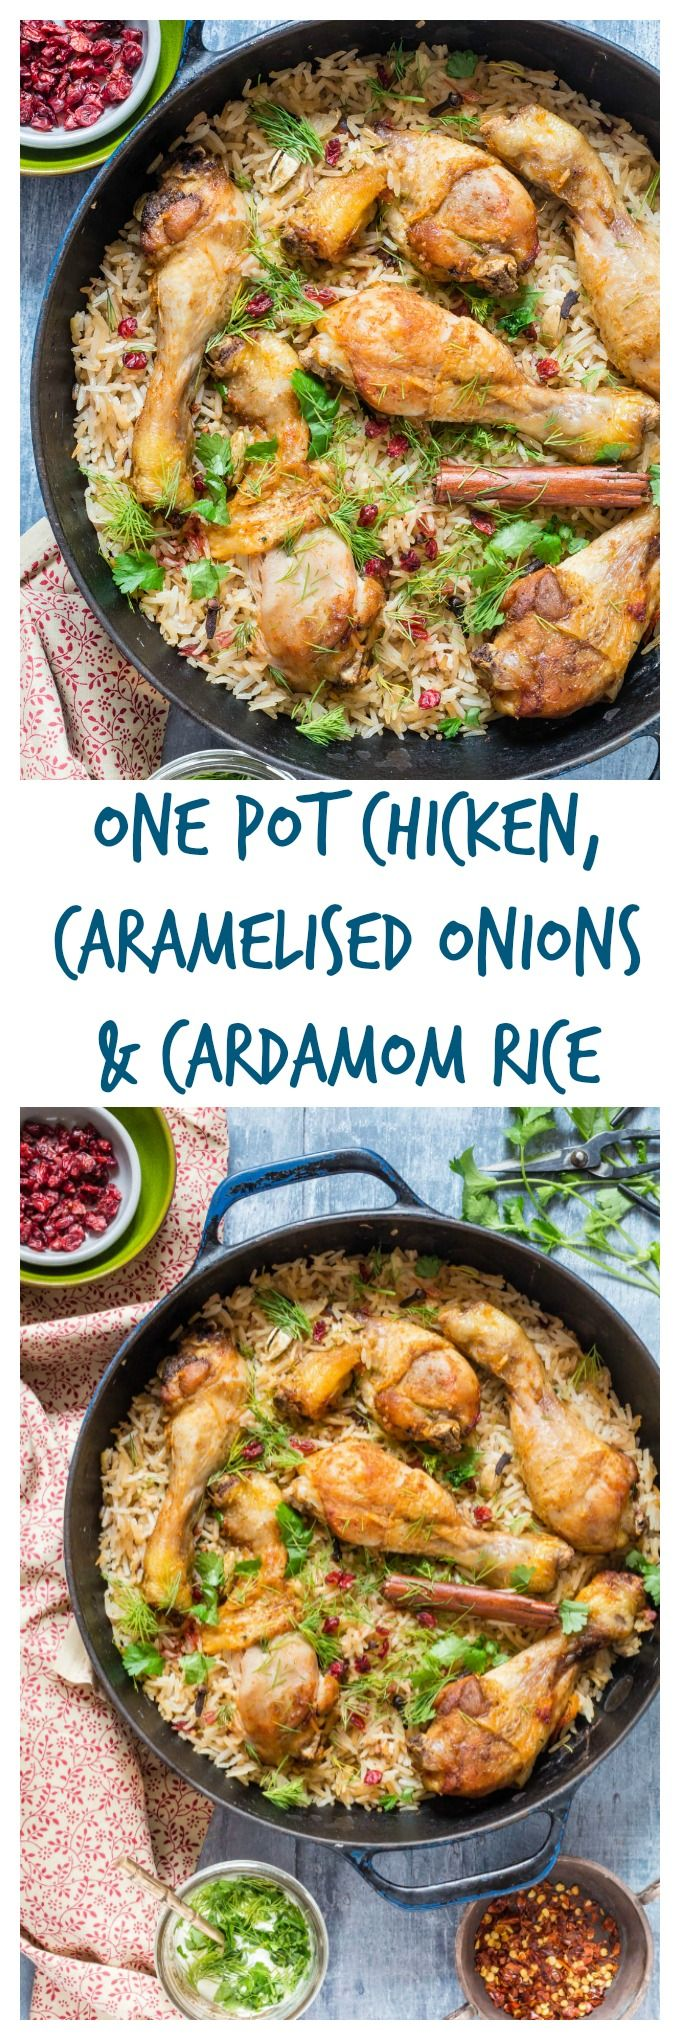 One Pot Chicken With Caramelized Onions, Cardamom And Barberry Rice   Recipes From A Pantry #onepotchicken #onepotrice #chickenrice